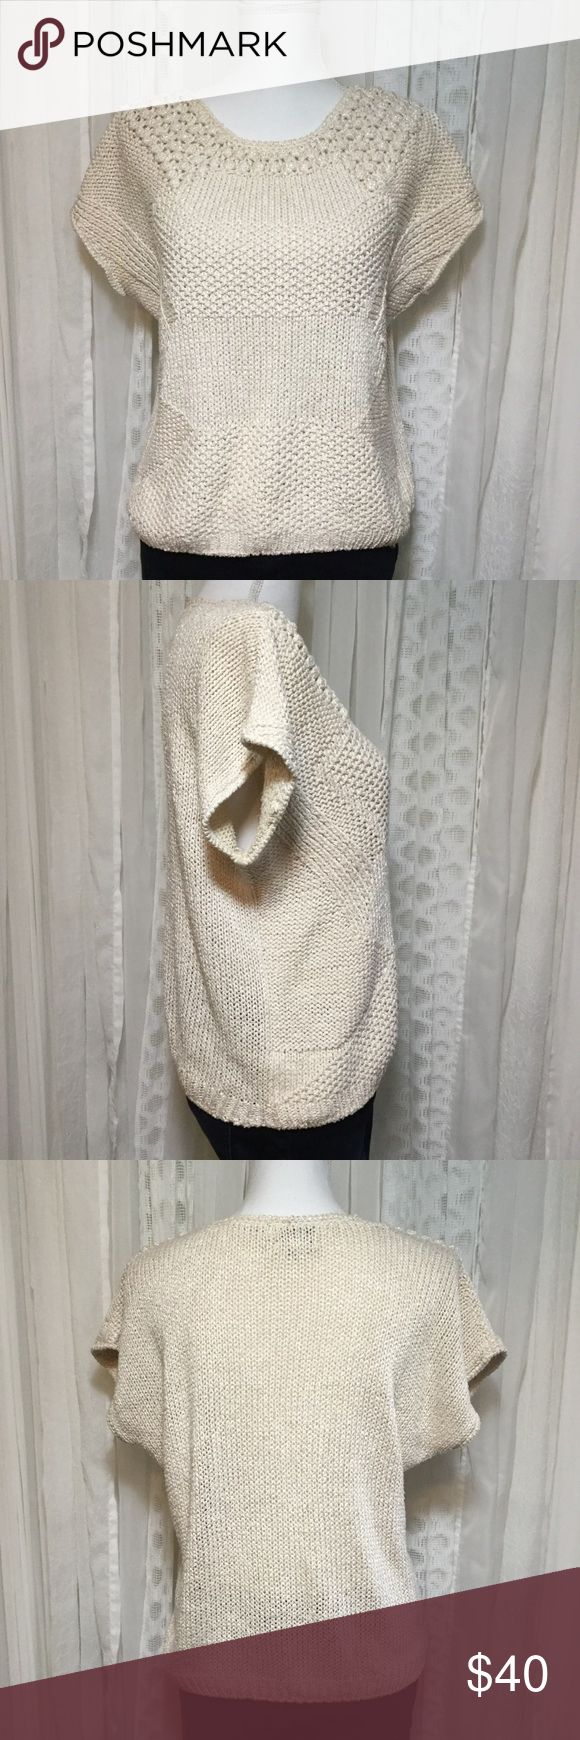 Vintage 80s Cream boxy chunky knit sweater This lovely hand knitted sweater is cream with a shine thread Mixed in. Tag reads hand knitted. No fabric or size tag. I would guess small or medium please see measurements Chest 21 inches Length 22 inches Definitely some type of cotton blend. Top part is slightly see-through. Sweater is very unique has different types of stitch as well as patterns. Very boxy style with no real defined shoulders. This is a classic and timeless piece, very on trend…